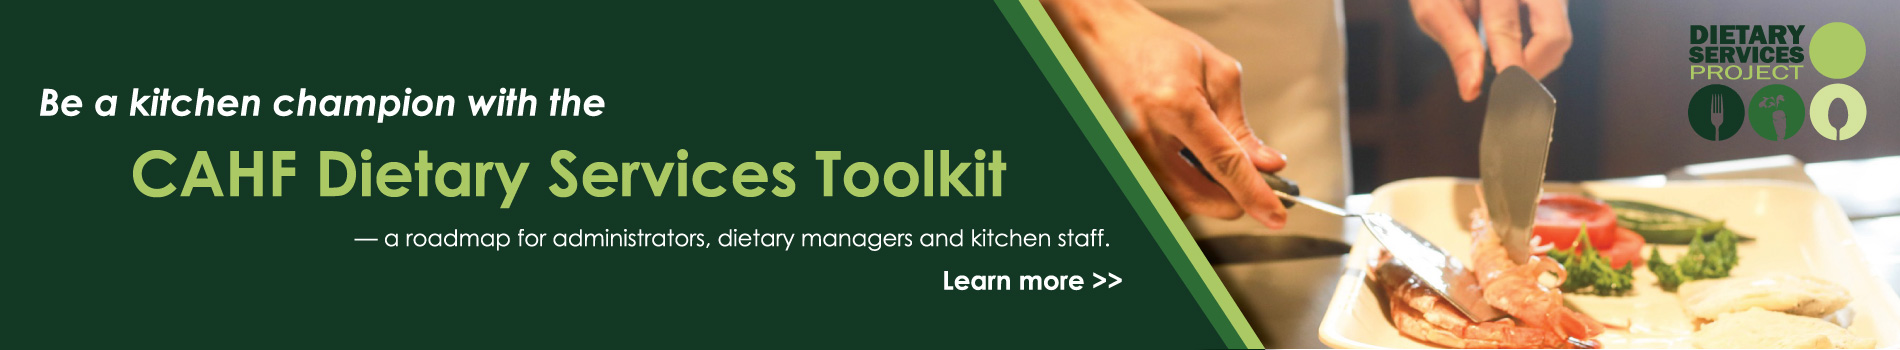 Dietary Services Toolkit